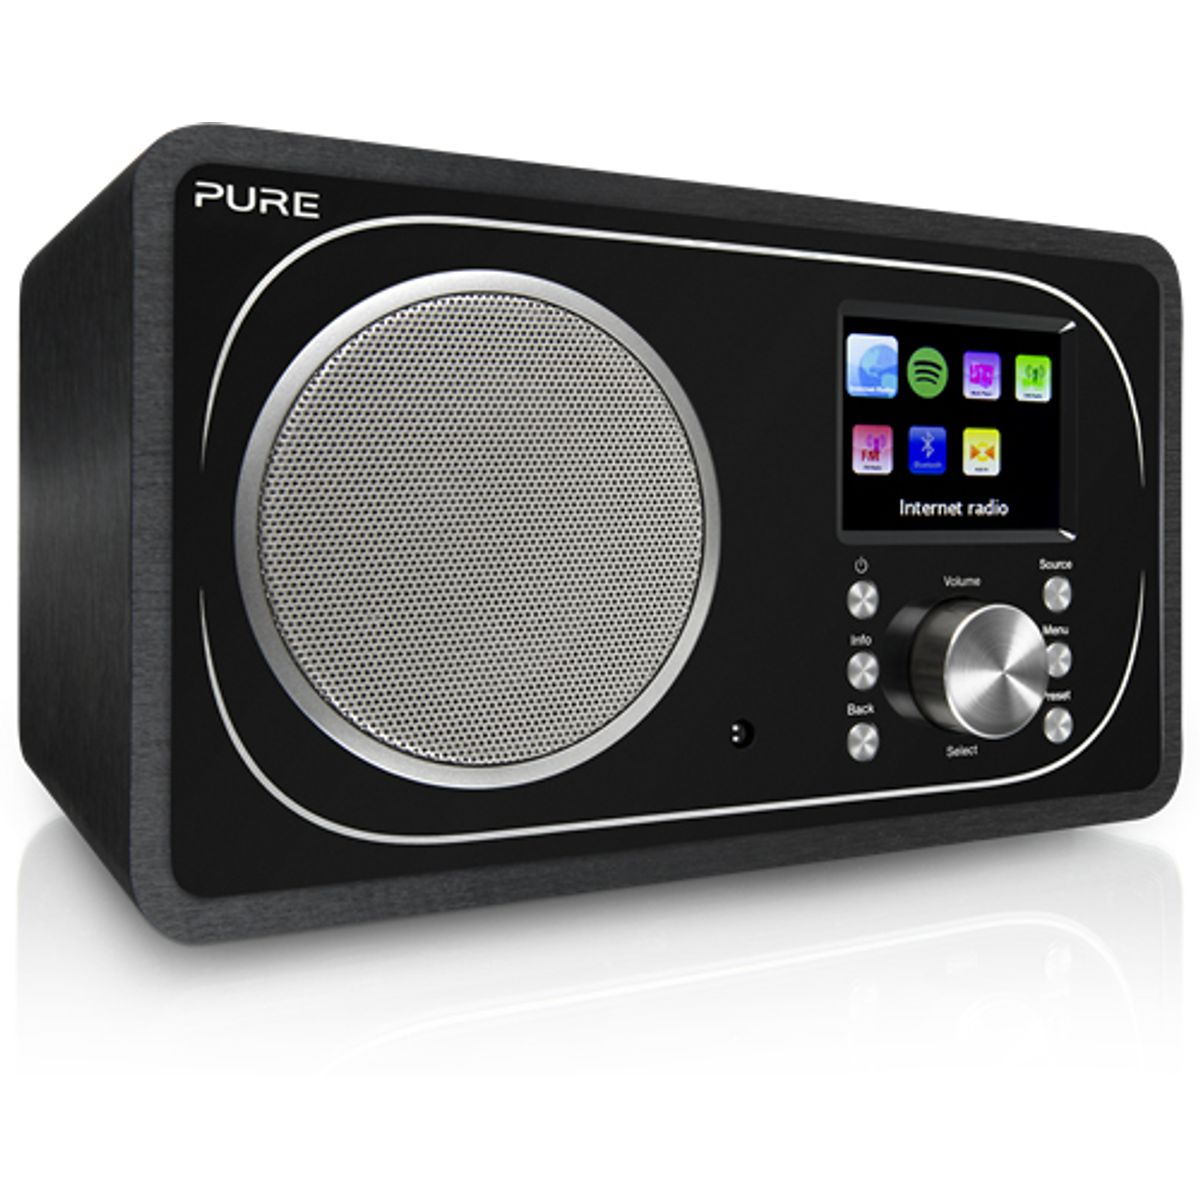 Pure Evoke F3 Digitalradio (DAB+, DAB, UKW, WLAN, Bluetooth, Internetradio, Spotify Connect, App, Sleep-Timer, Weckfunktion, inkl. Fernbedienung, Streaming, 25000 Radiosender)